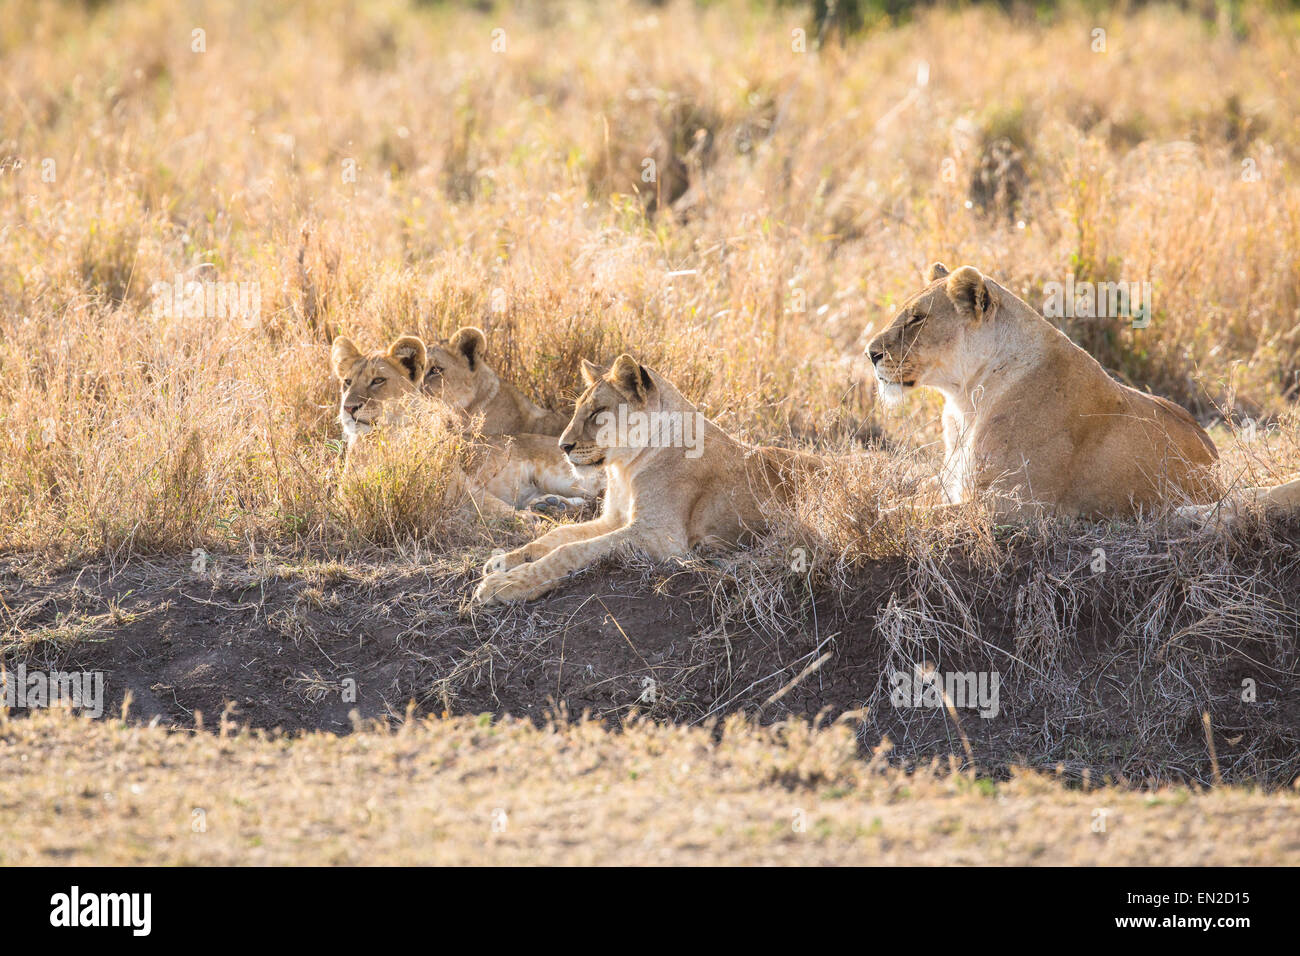 Lion pride rests in the grass - Stock Image